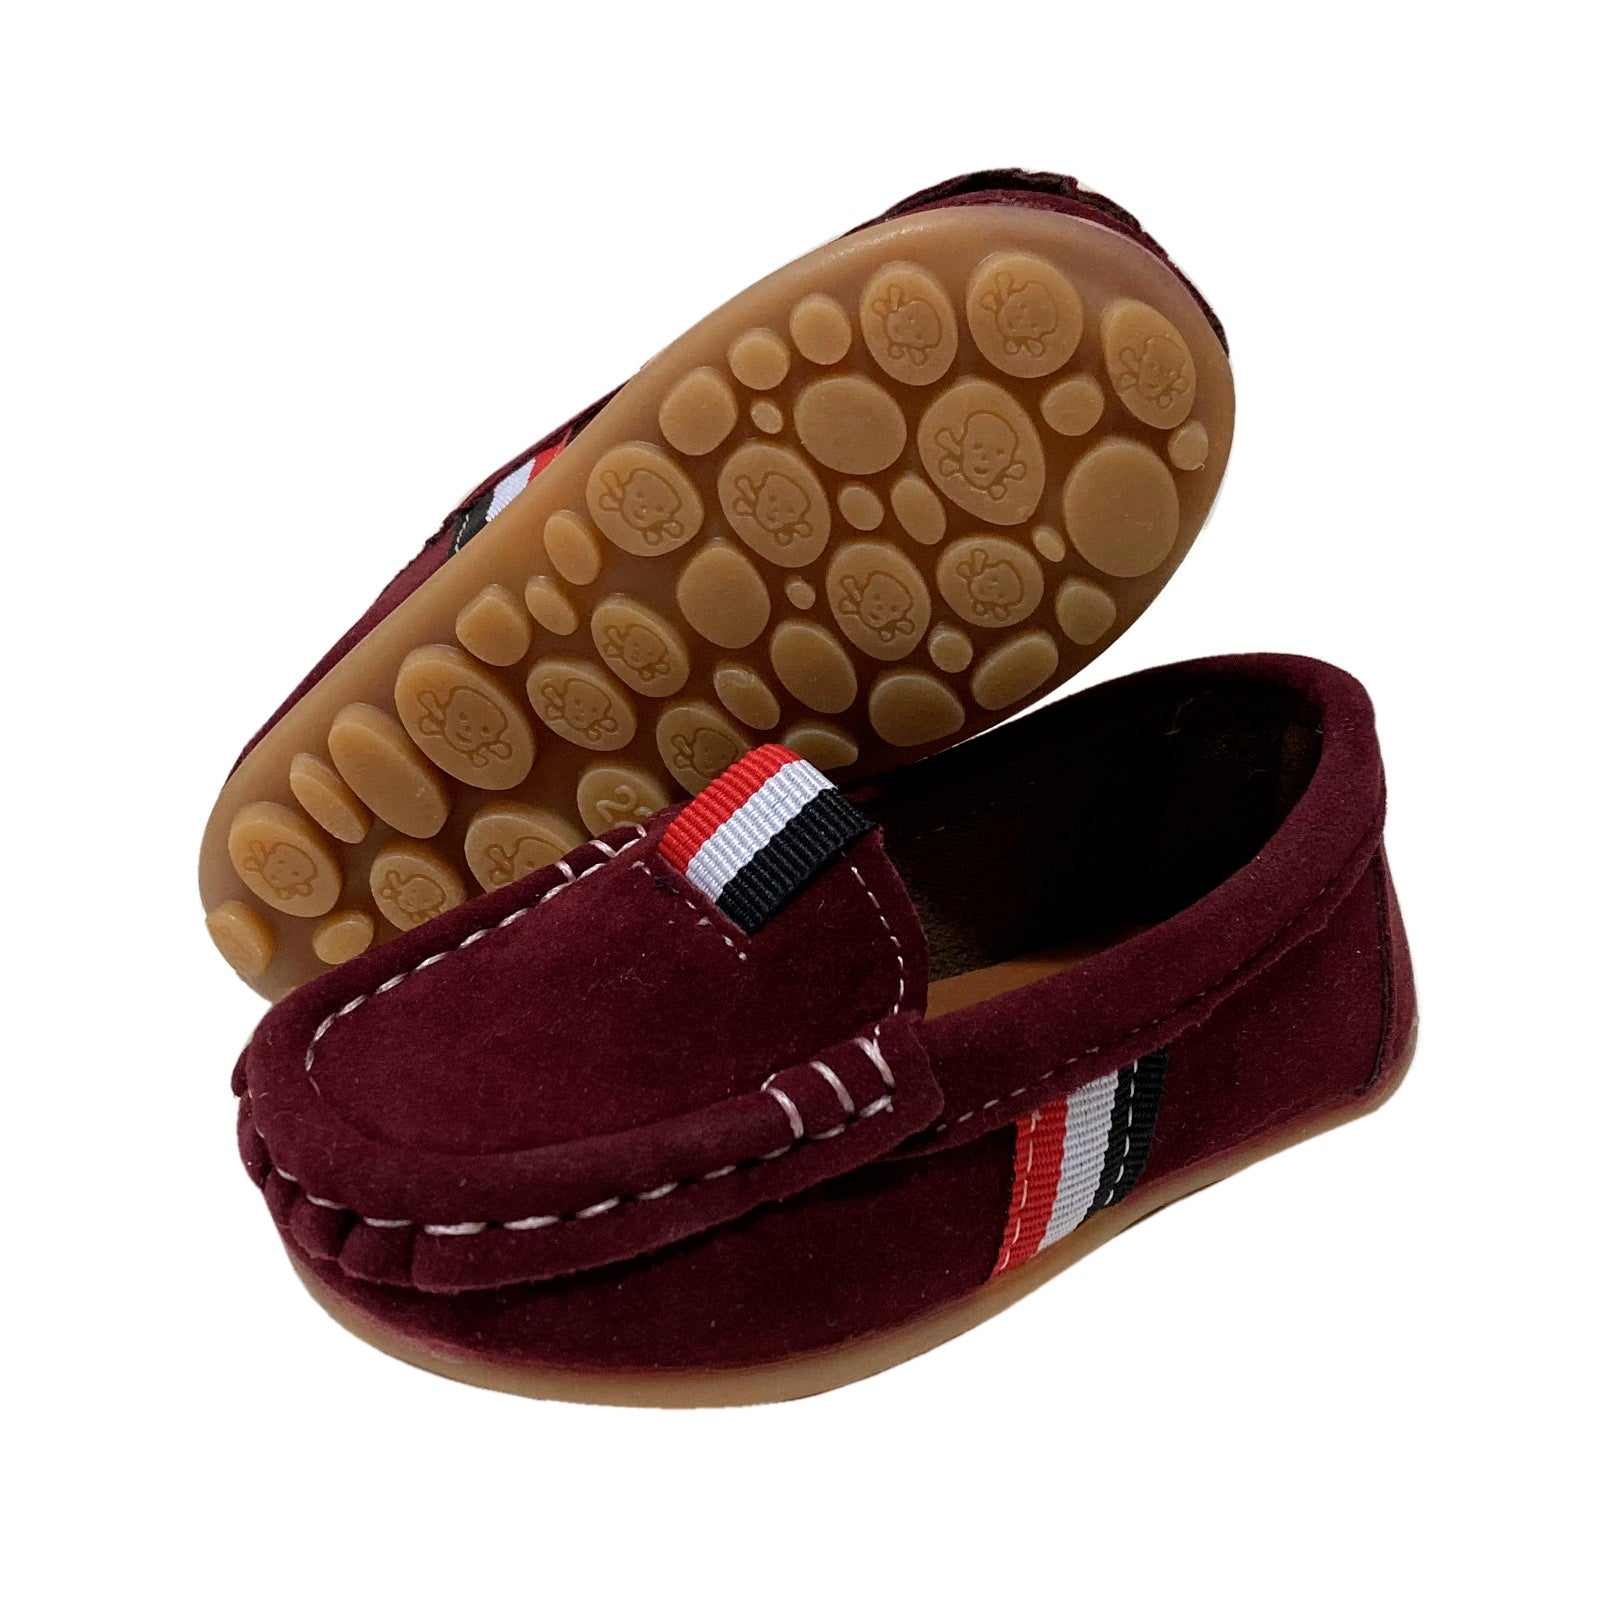 S168 Moccasin Softee Suede-Red (EU21-25)